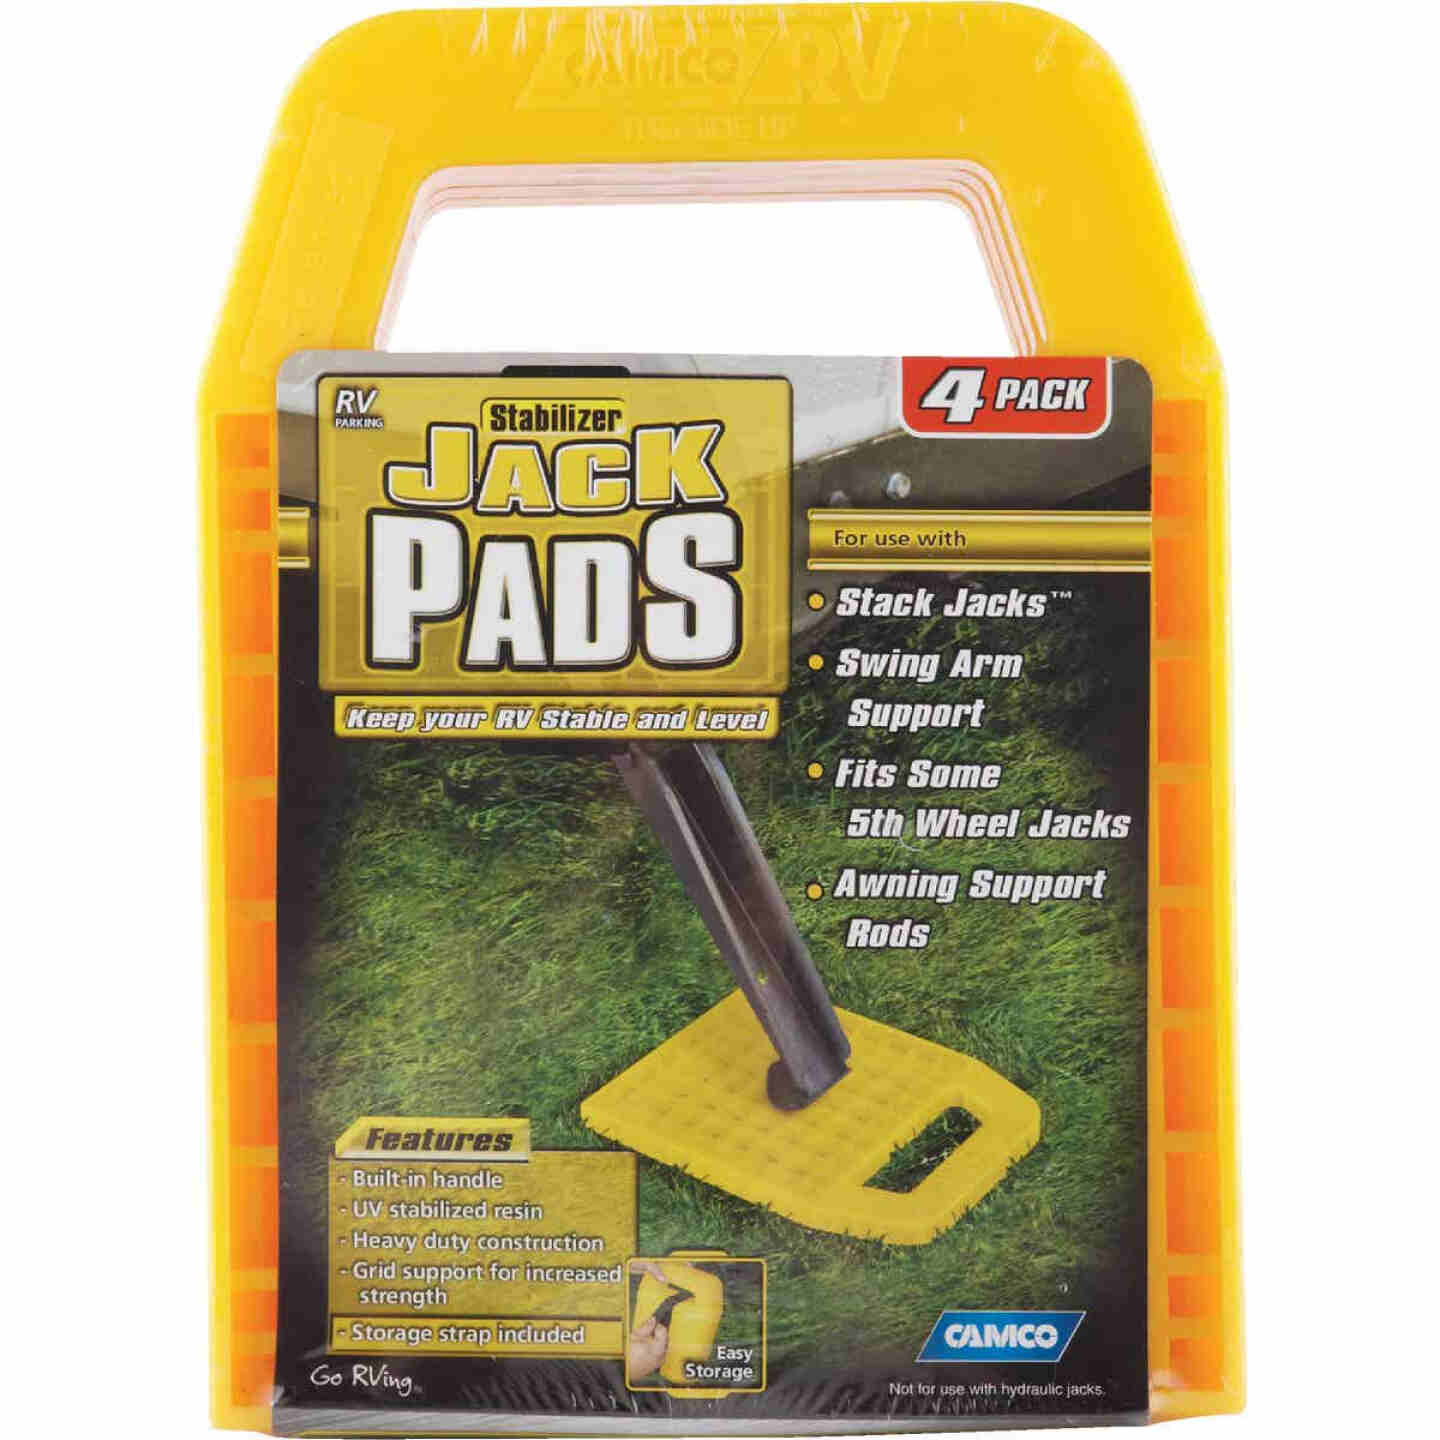 Camco Interlocking w/Built-in Handle RV Stabilizer Jack Pads, (4-Pack) Image 5